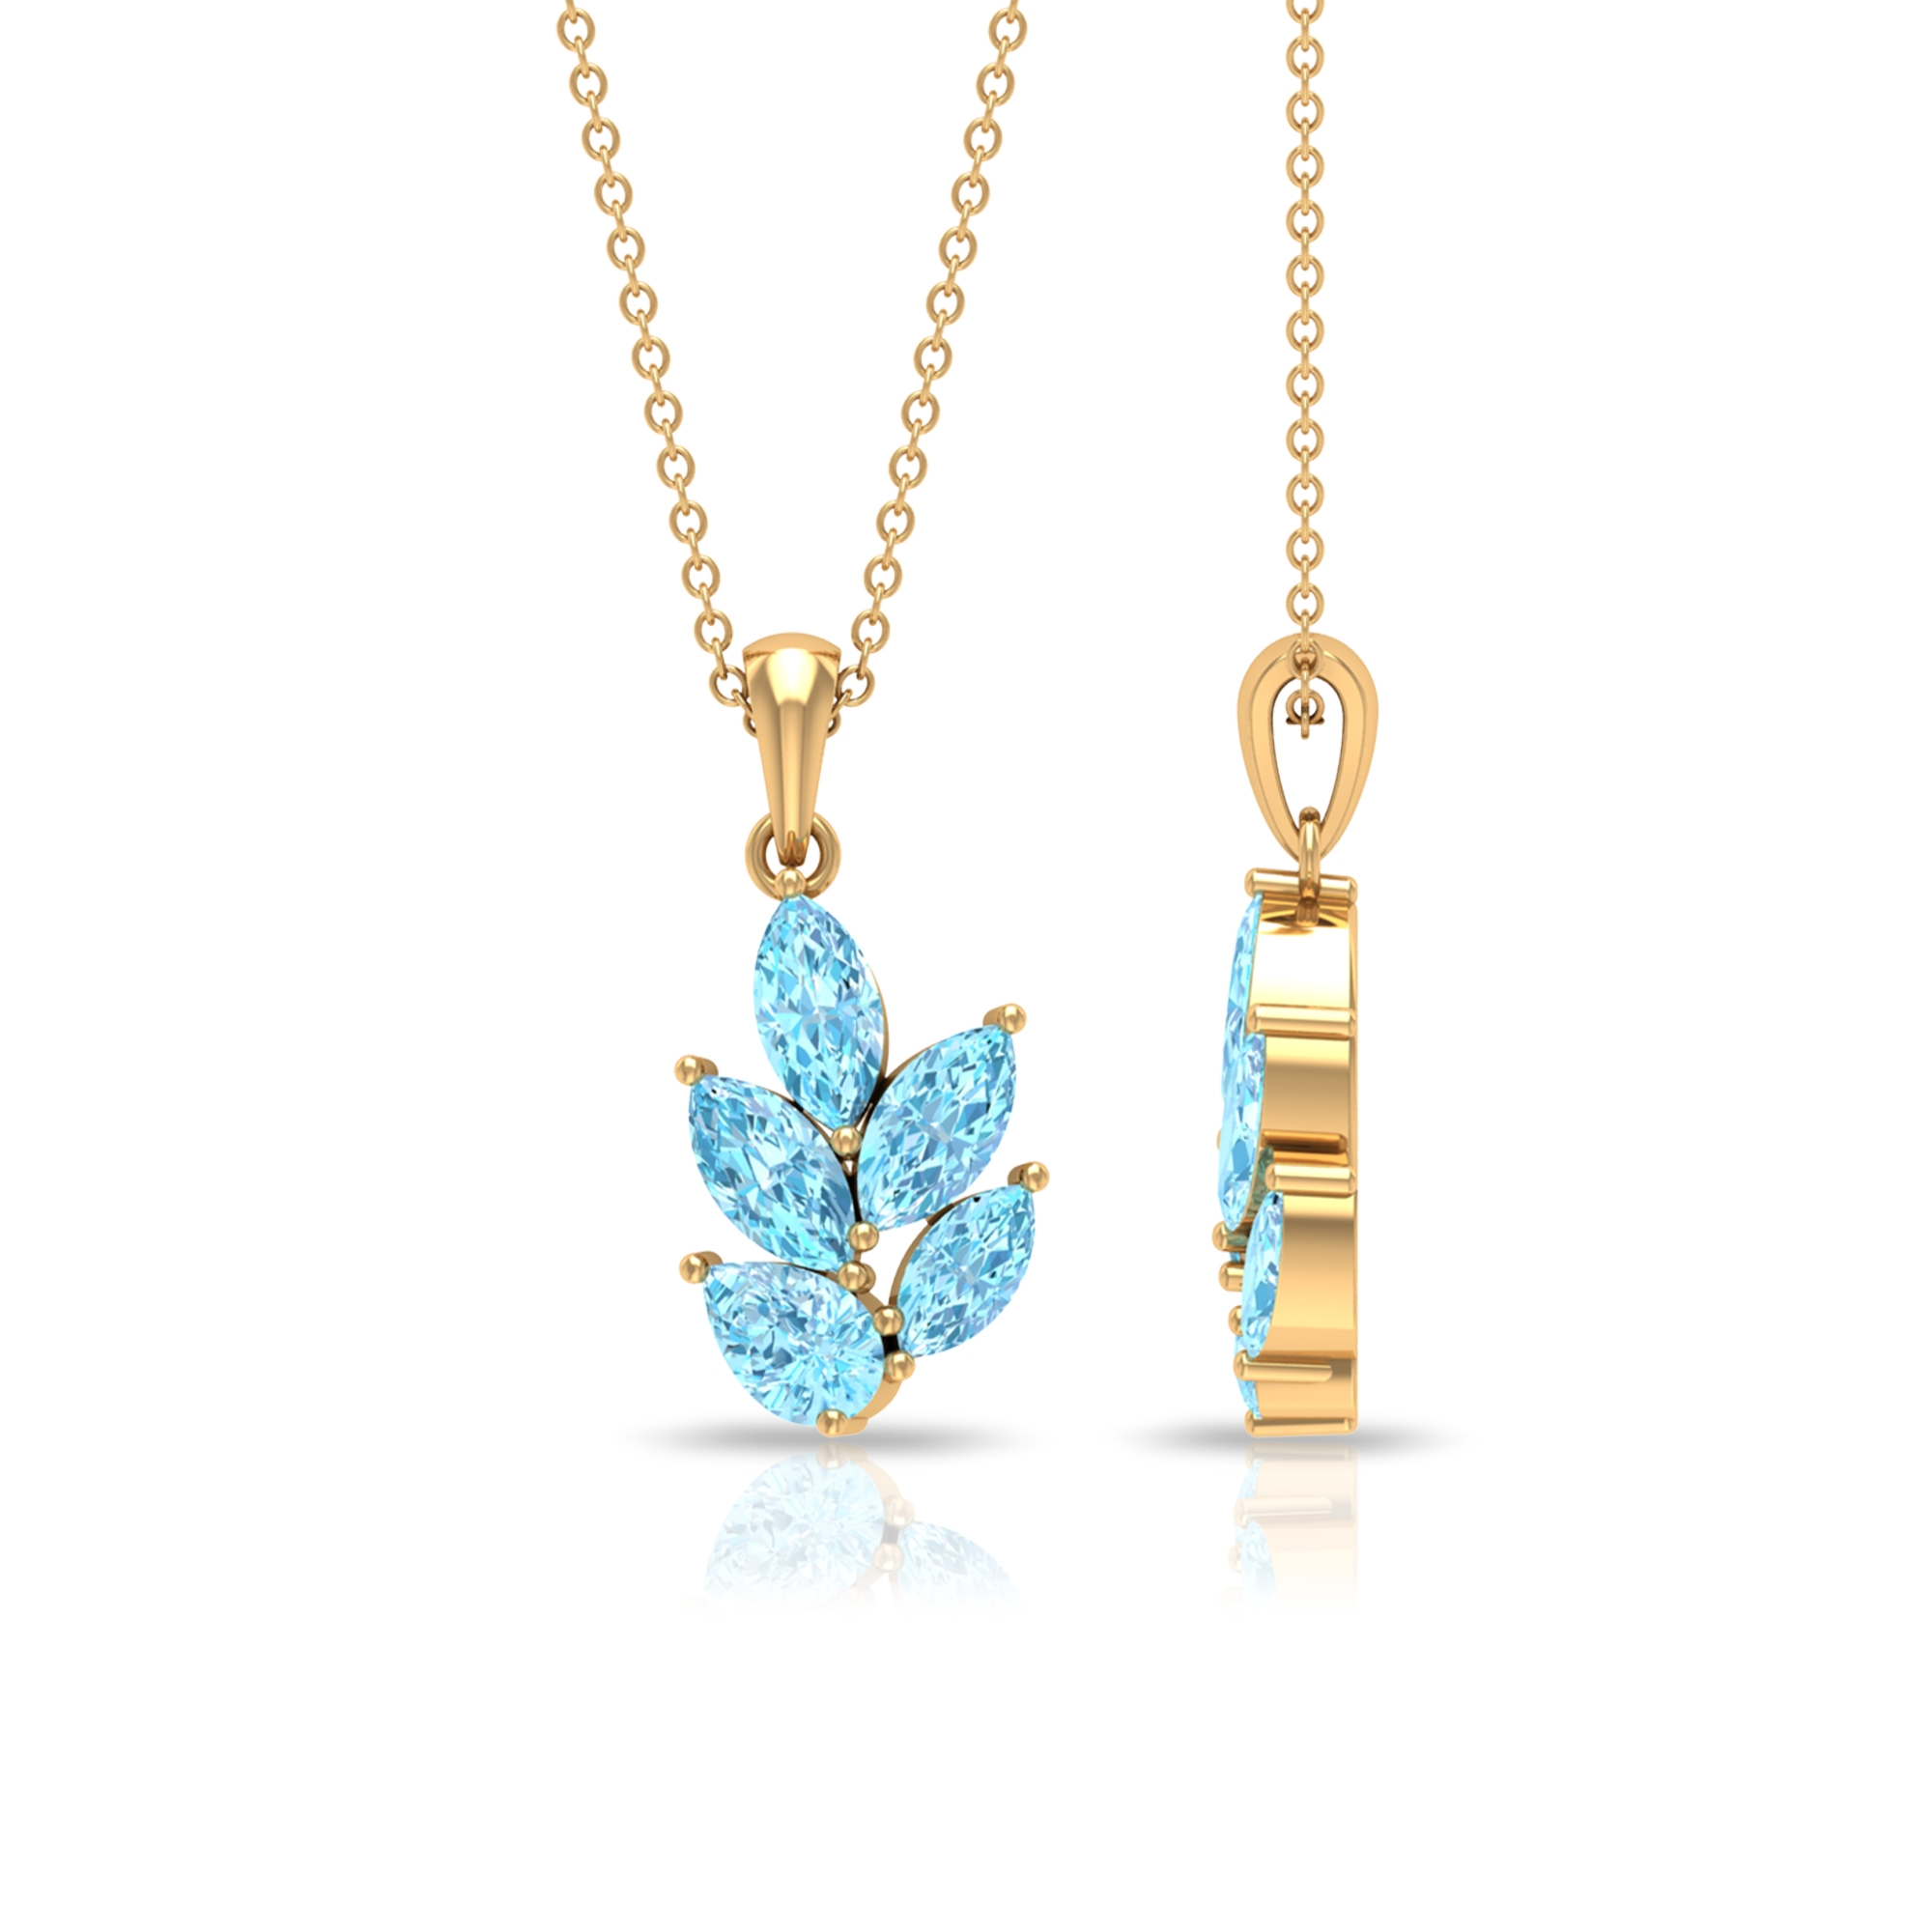 2.25 CT Leaf Pendant Necklace with Marquise and Pear Cut Aquamarine